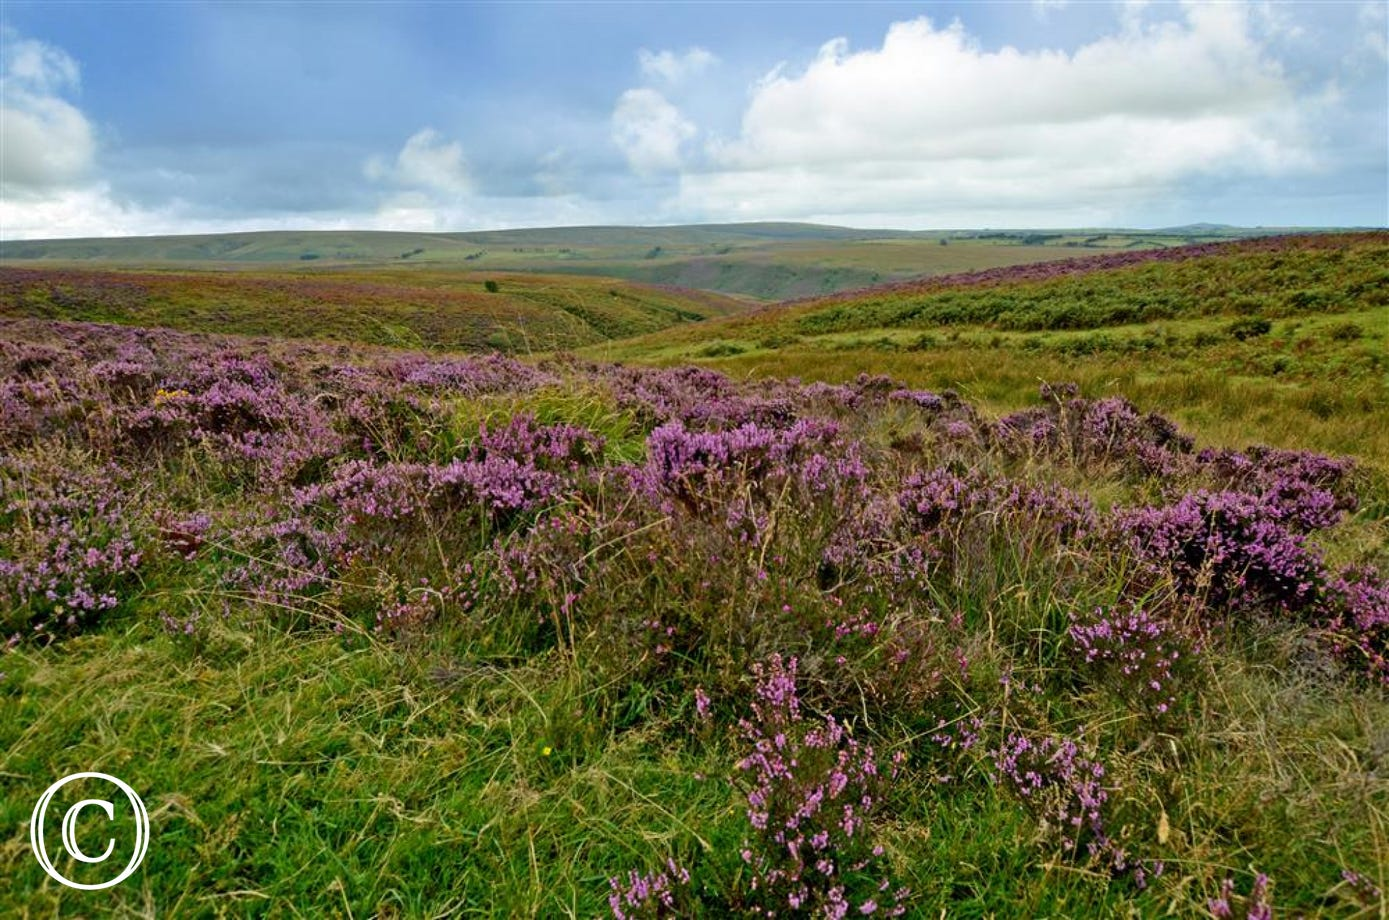 Look out for Exmoor ponies and deer on the heather clad moorland close by